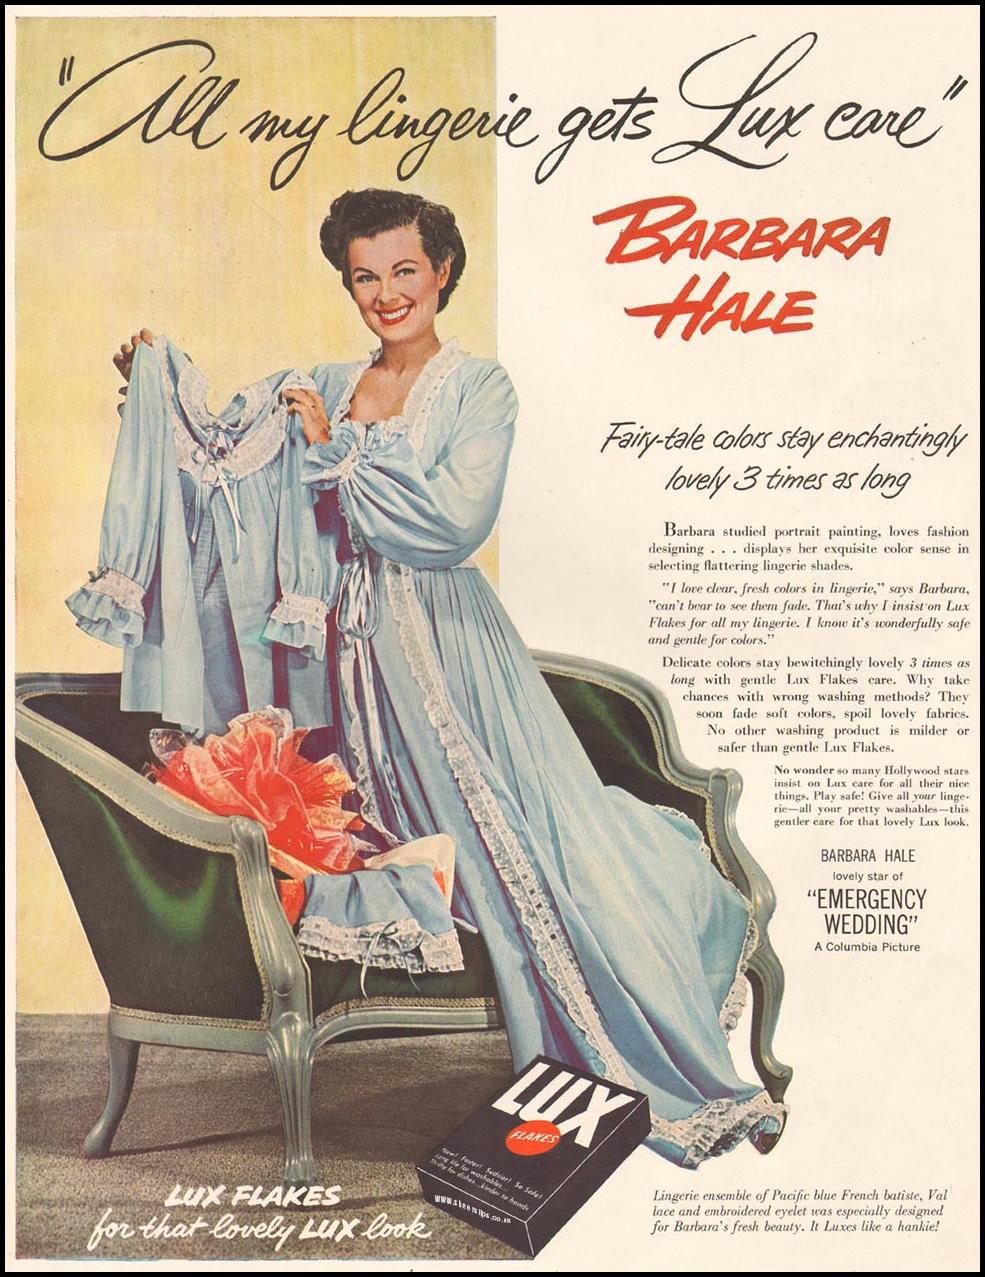 Lux Laundry Soap and Barbara Hale's Knickers